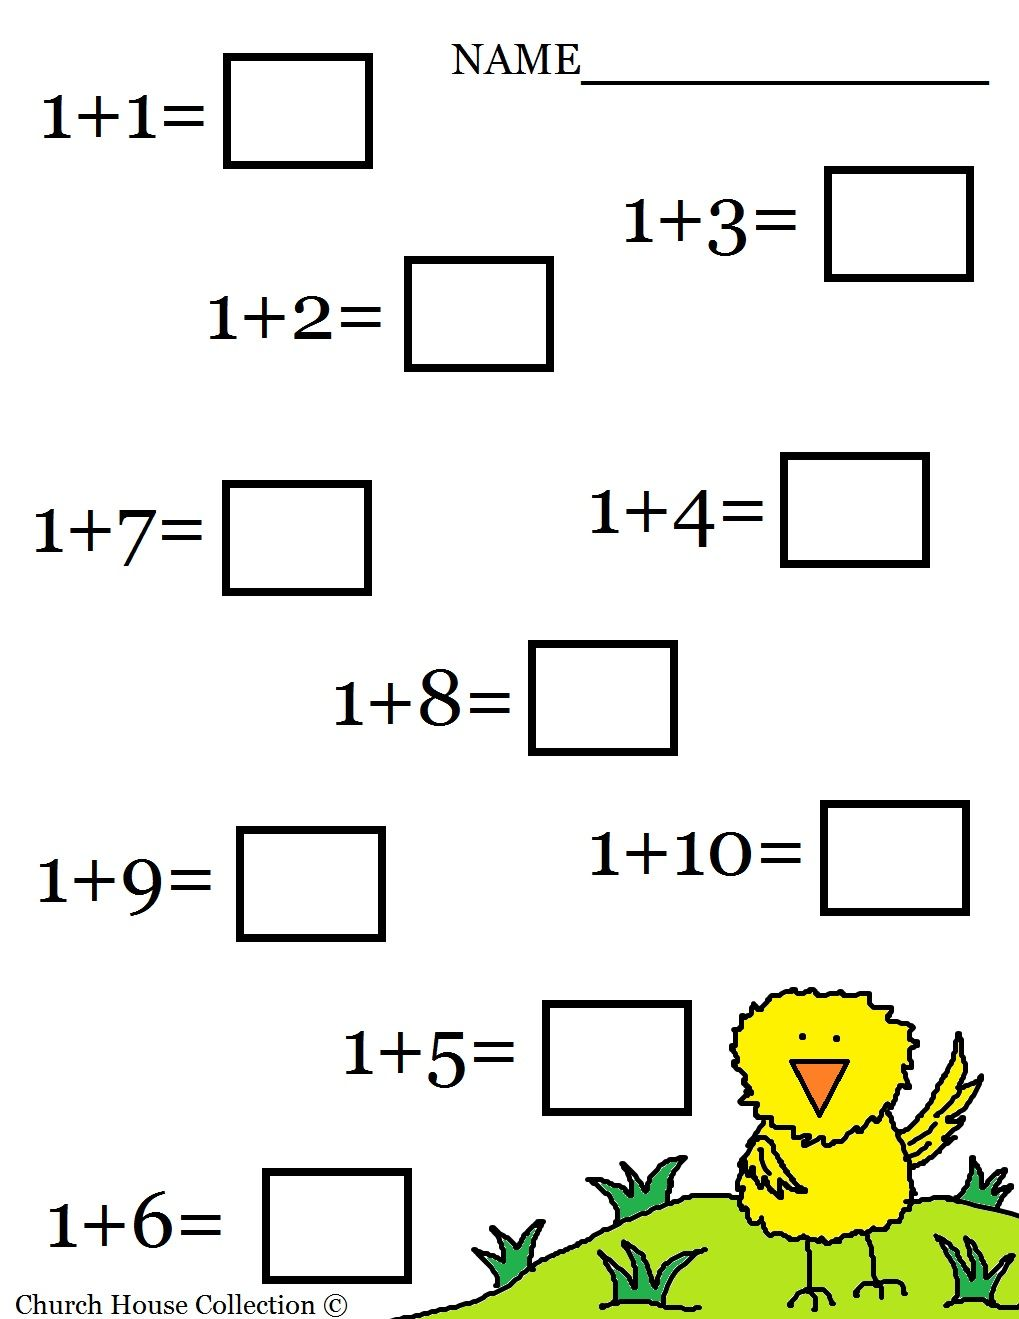 Aldiablosus  Personable  Images About Worksheets  Math On Pinterest  Math Sheets  With Extraordinary  Images About Worksheets  Math On Pinterest  Math Sheets Math Worksheets For Kindergarten And Simple Addition With Charming Slopes Worksheet Also Multiplying Mixed Fractions Worksheets In Addition Adding Worksheets Kindergarten And Sink Or Float Worksheets As Well As Second Grade Multiplication Worksheets Additionally Balancing Chemical Reactions Worksheet  From Pinterestcom With Aldiablosus  Extraordinary  Images About Worksheets  Math On Pinterest  Math Sheets  With Charming  Images About Worksheets  Math On Pinterest  Math Sheets Math Worksheets For Kindergarten And Simple Addition And Personable Slopes Worksheet Also Multiplying Mixed Fractions Worksheets In Addition Adding Worksheets Kindergarten From Pinterestcom